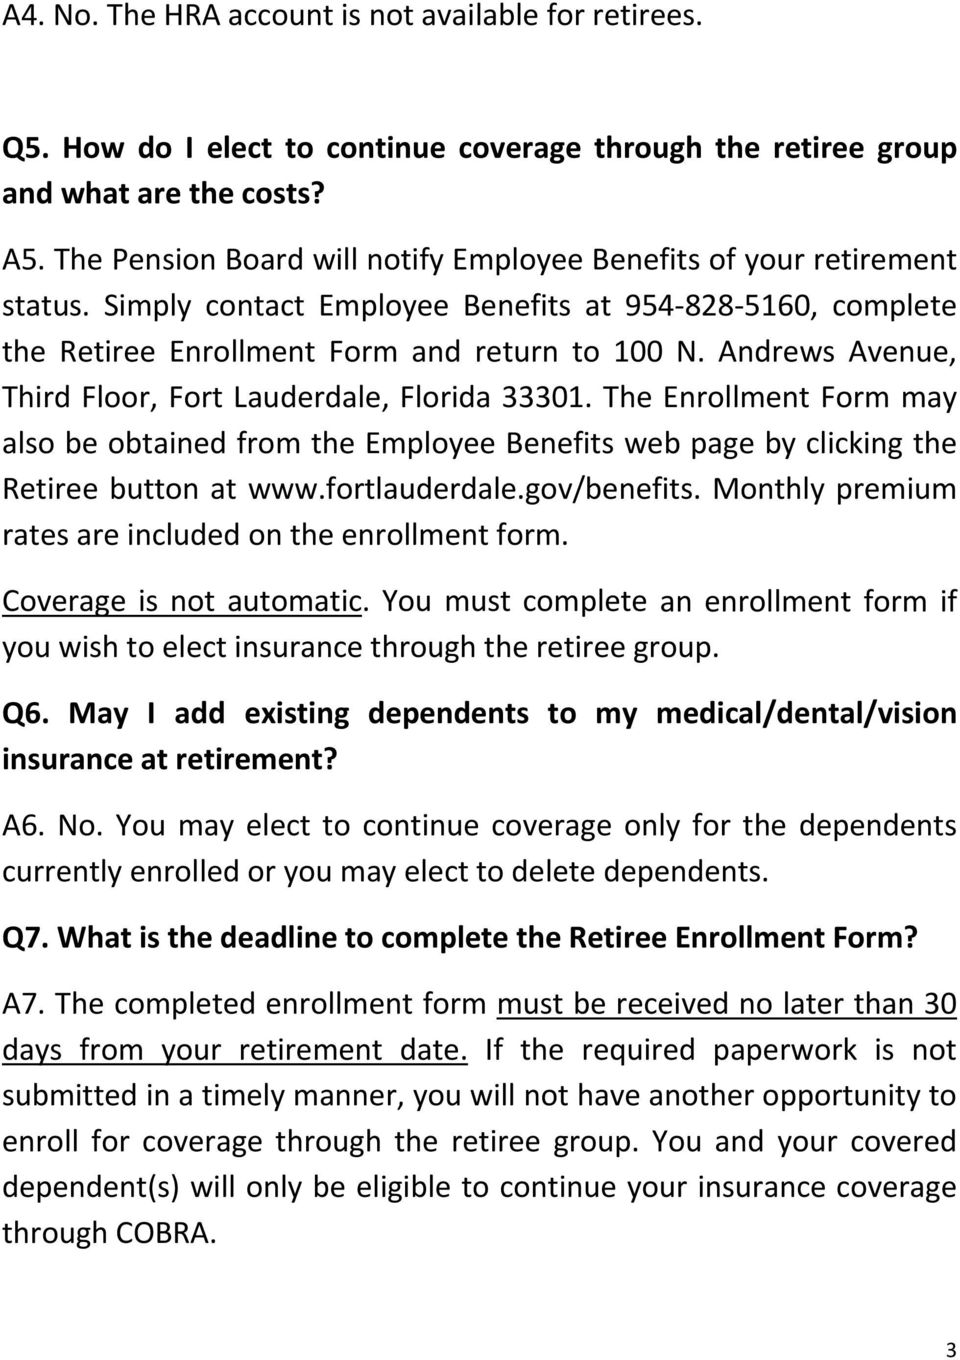 Andrews Avenue, Third Floor, Fort Lauderdale, Florida 33301. The Enrollment Form may also be obtained from the Employee Benefits web page by clicking the Retiree button at www.fortlauderdale.